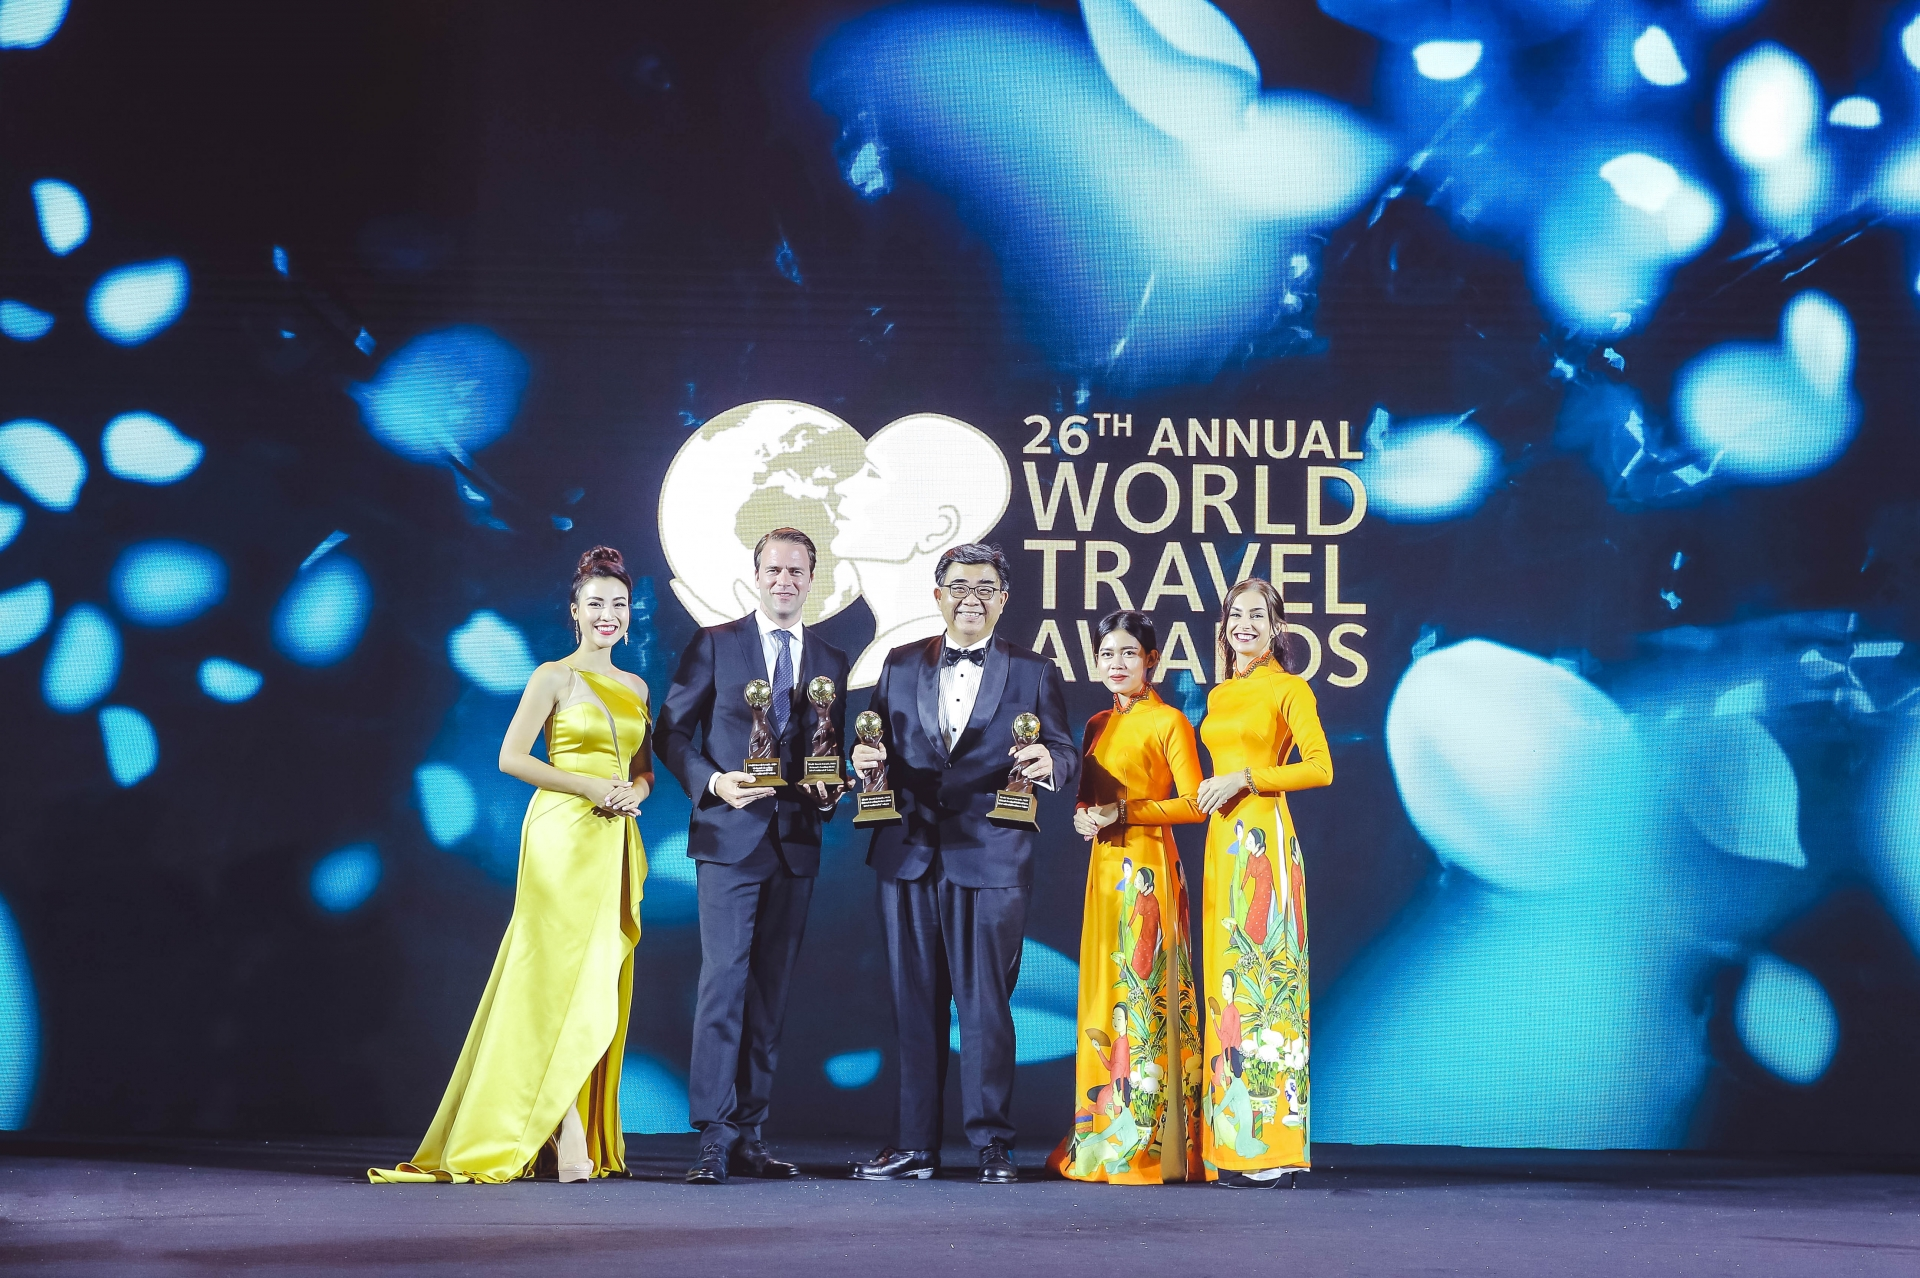 intercontinental saigon recognised as vietnams leading conference hotel 2019